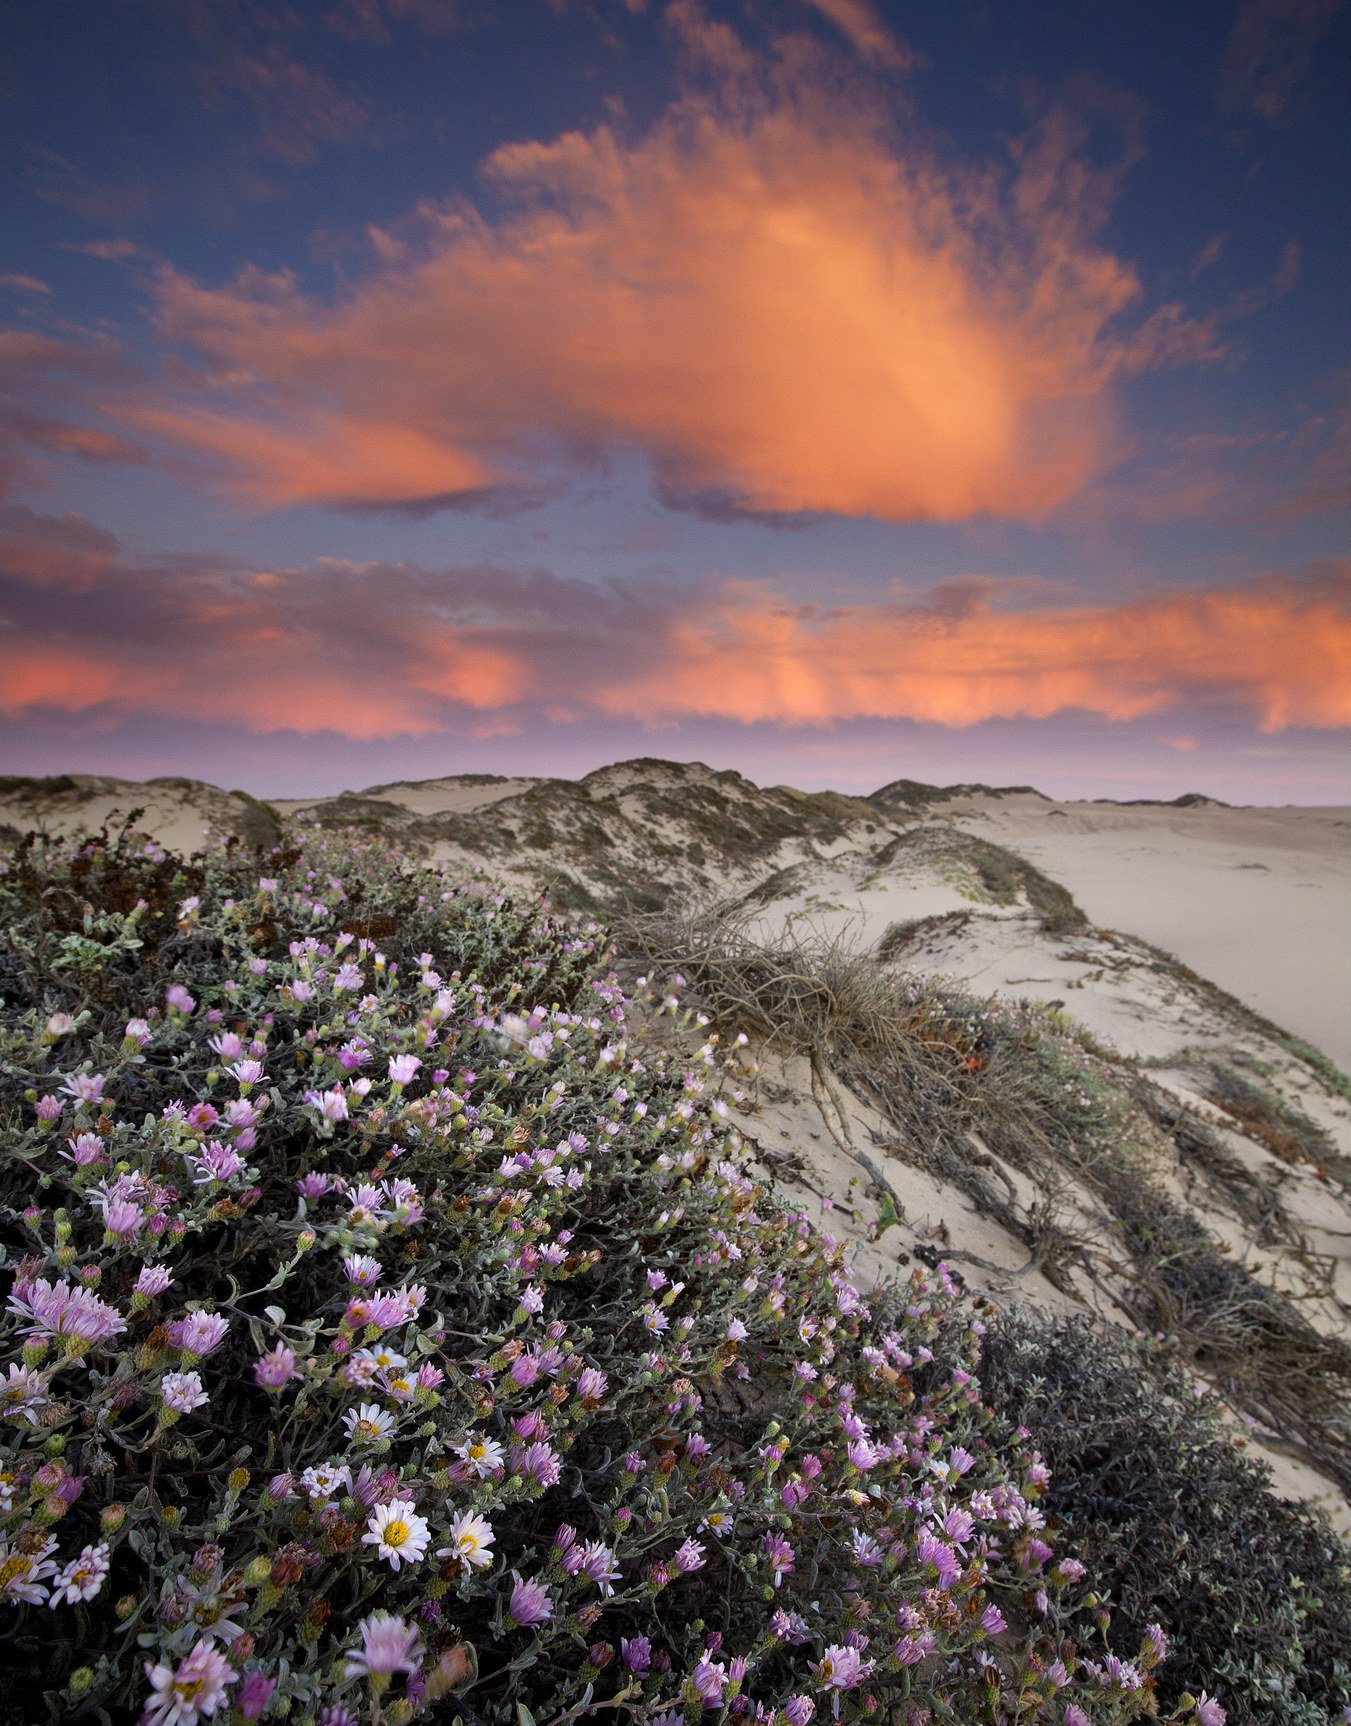 Wildflowers scattered across the sands at Guadalupe-Nipomo Dunes #WildlifeRefuge #California https://t.co/CxG055449o